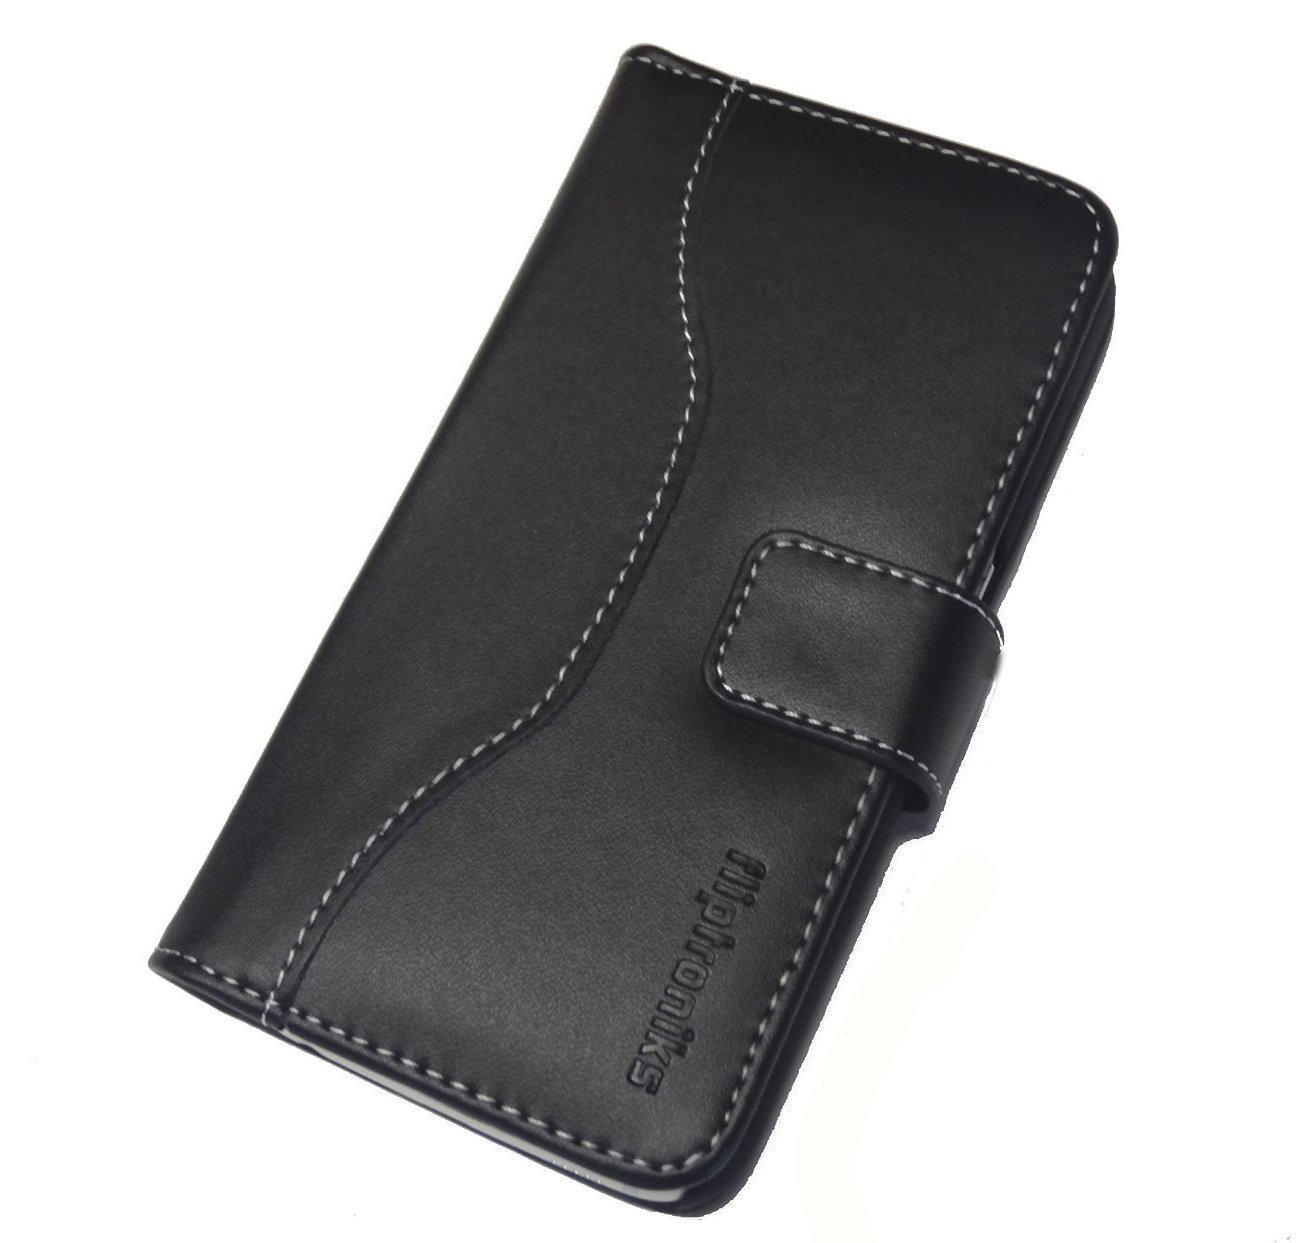 Fliptroniks Samsung Galaxy S6 Edge Black Real Leather Wallet Case